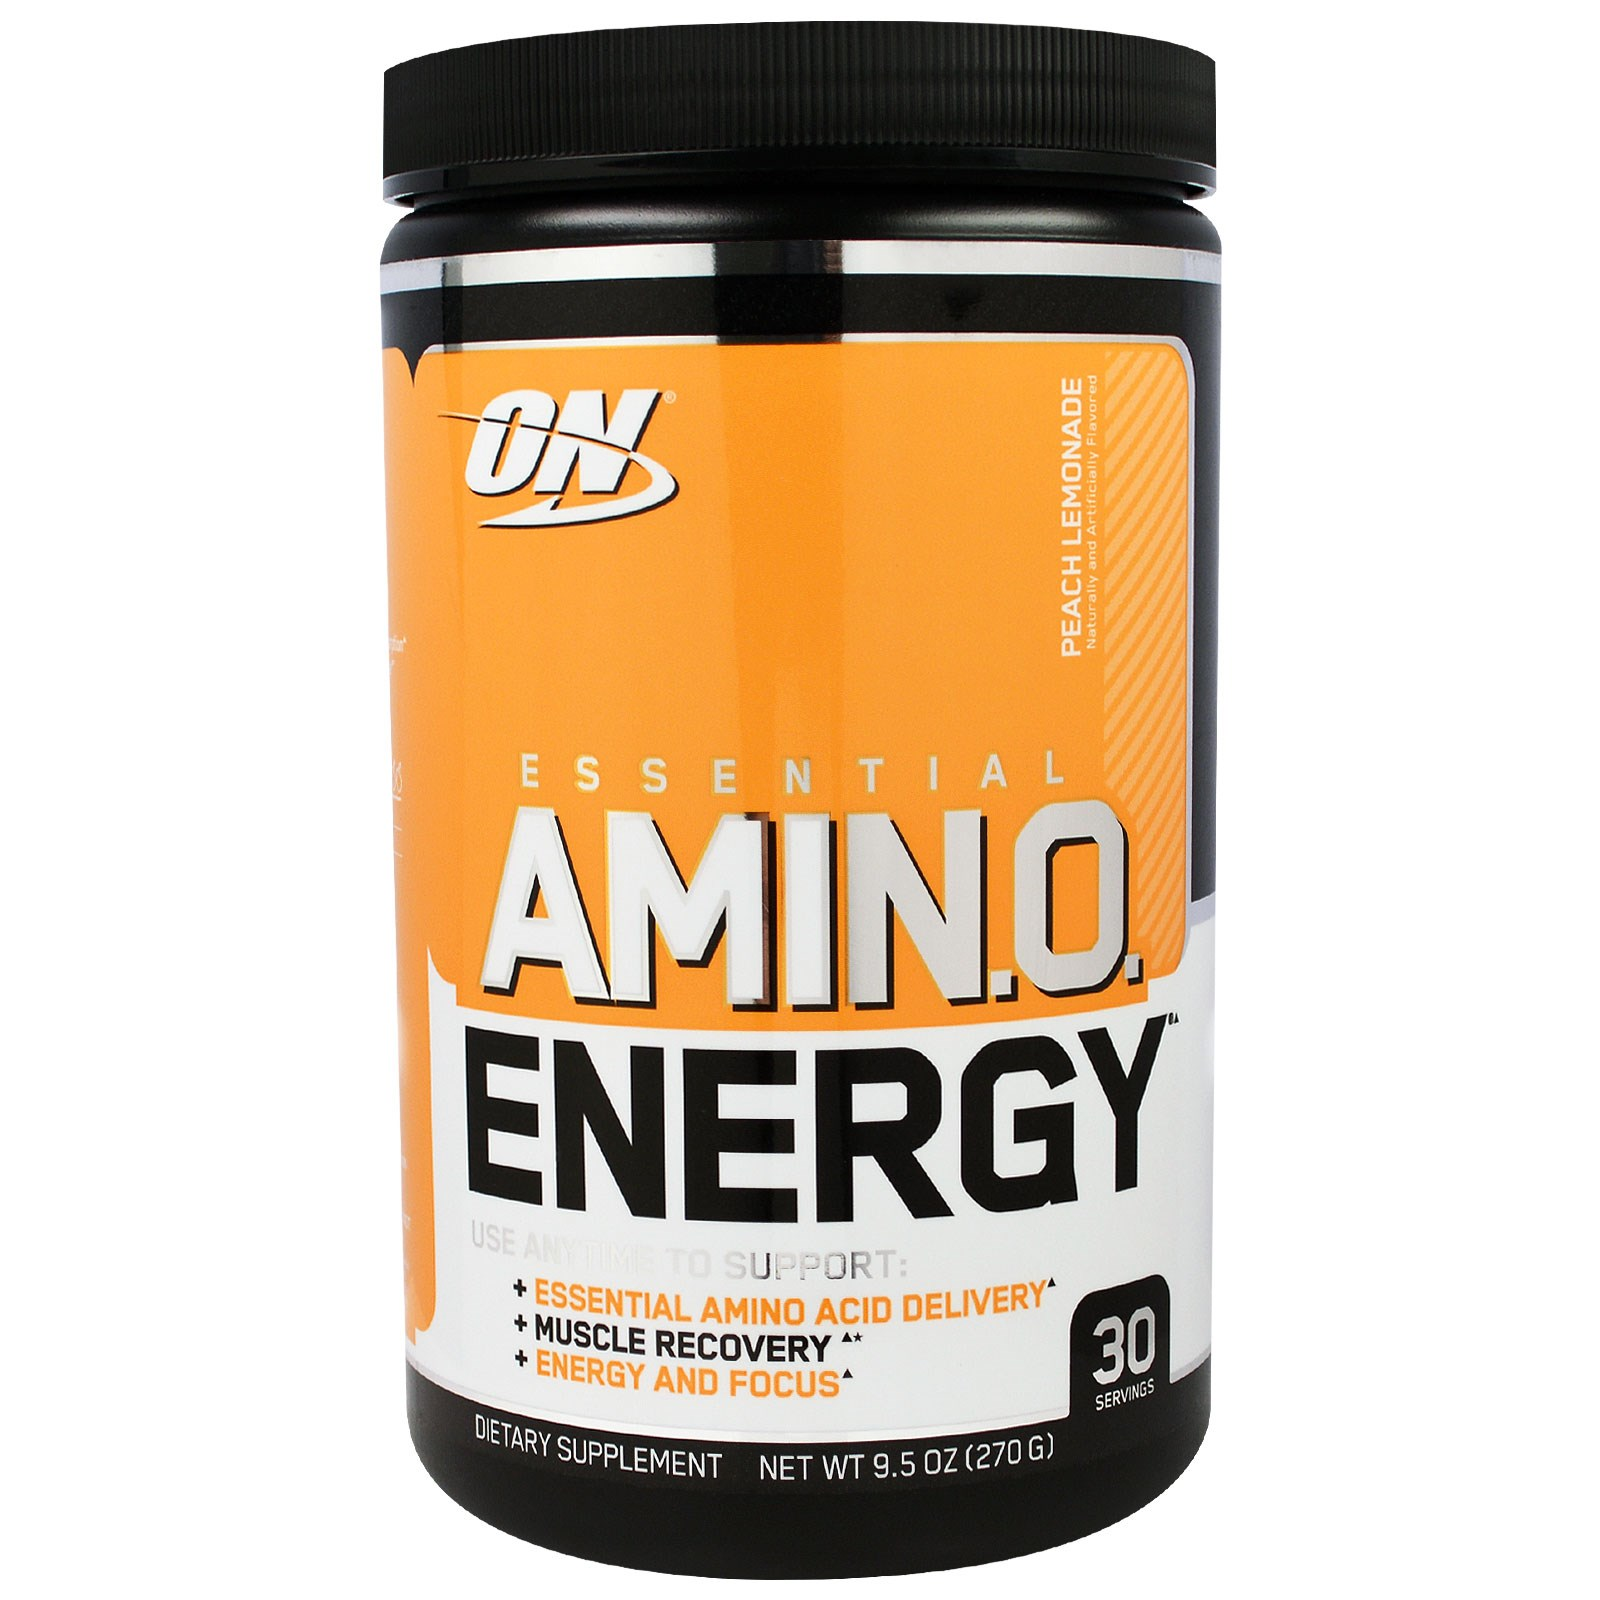 Optimum Nutrition, Essential Amino Energy, Peach Lemonade, 9.5 oz (270 g)